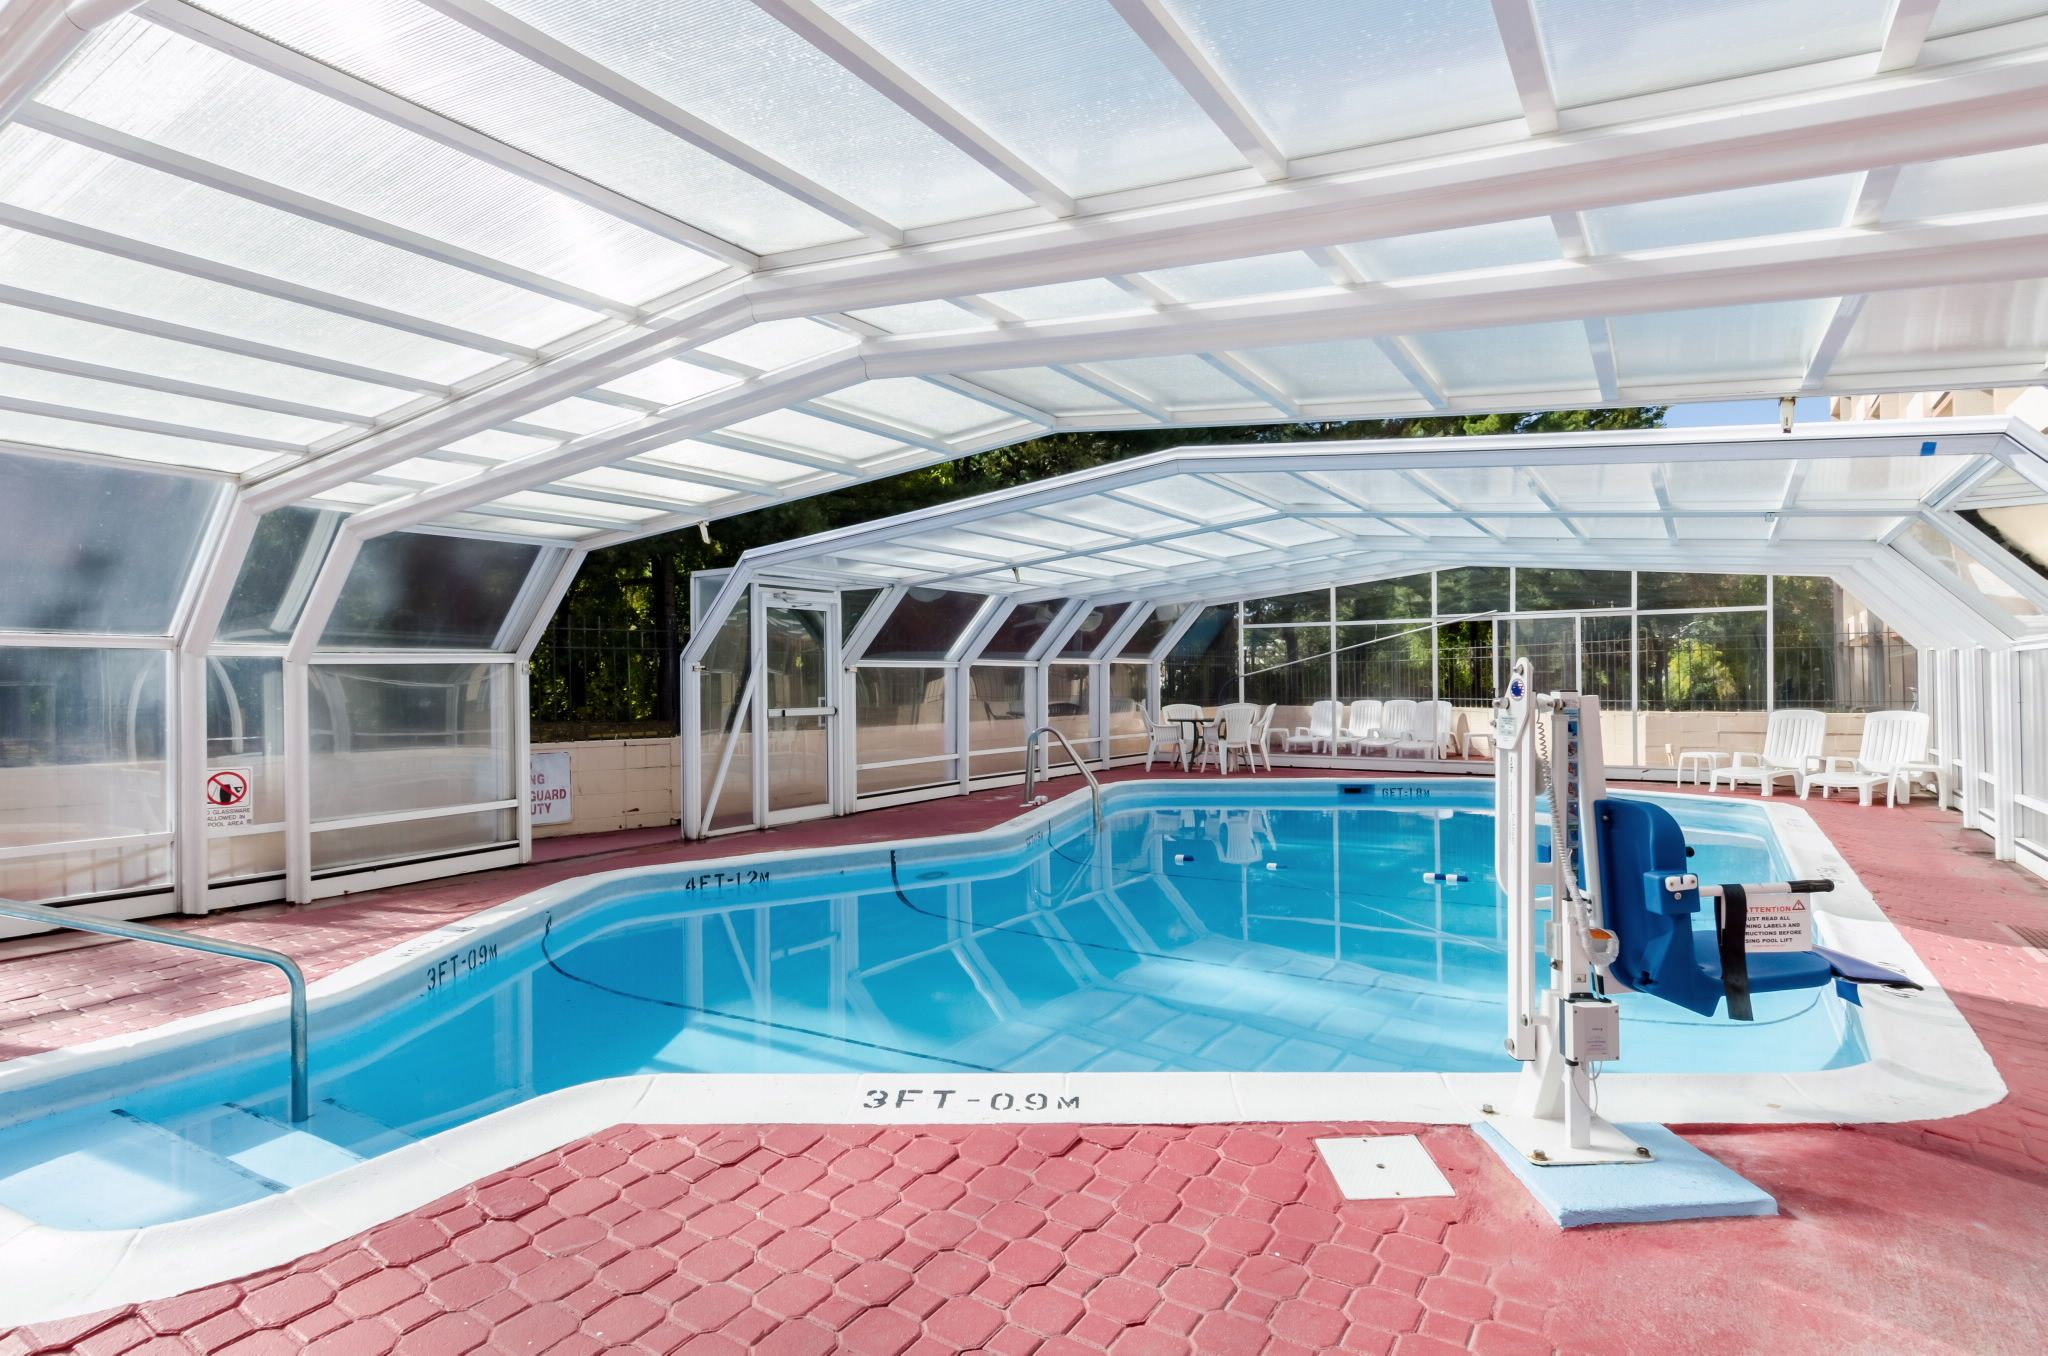 Hotels near Pioneer Valley MA is minutes away from all local historical area attractions. Book Baystate Medical Center Hotels convenient to Six Flags New England